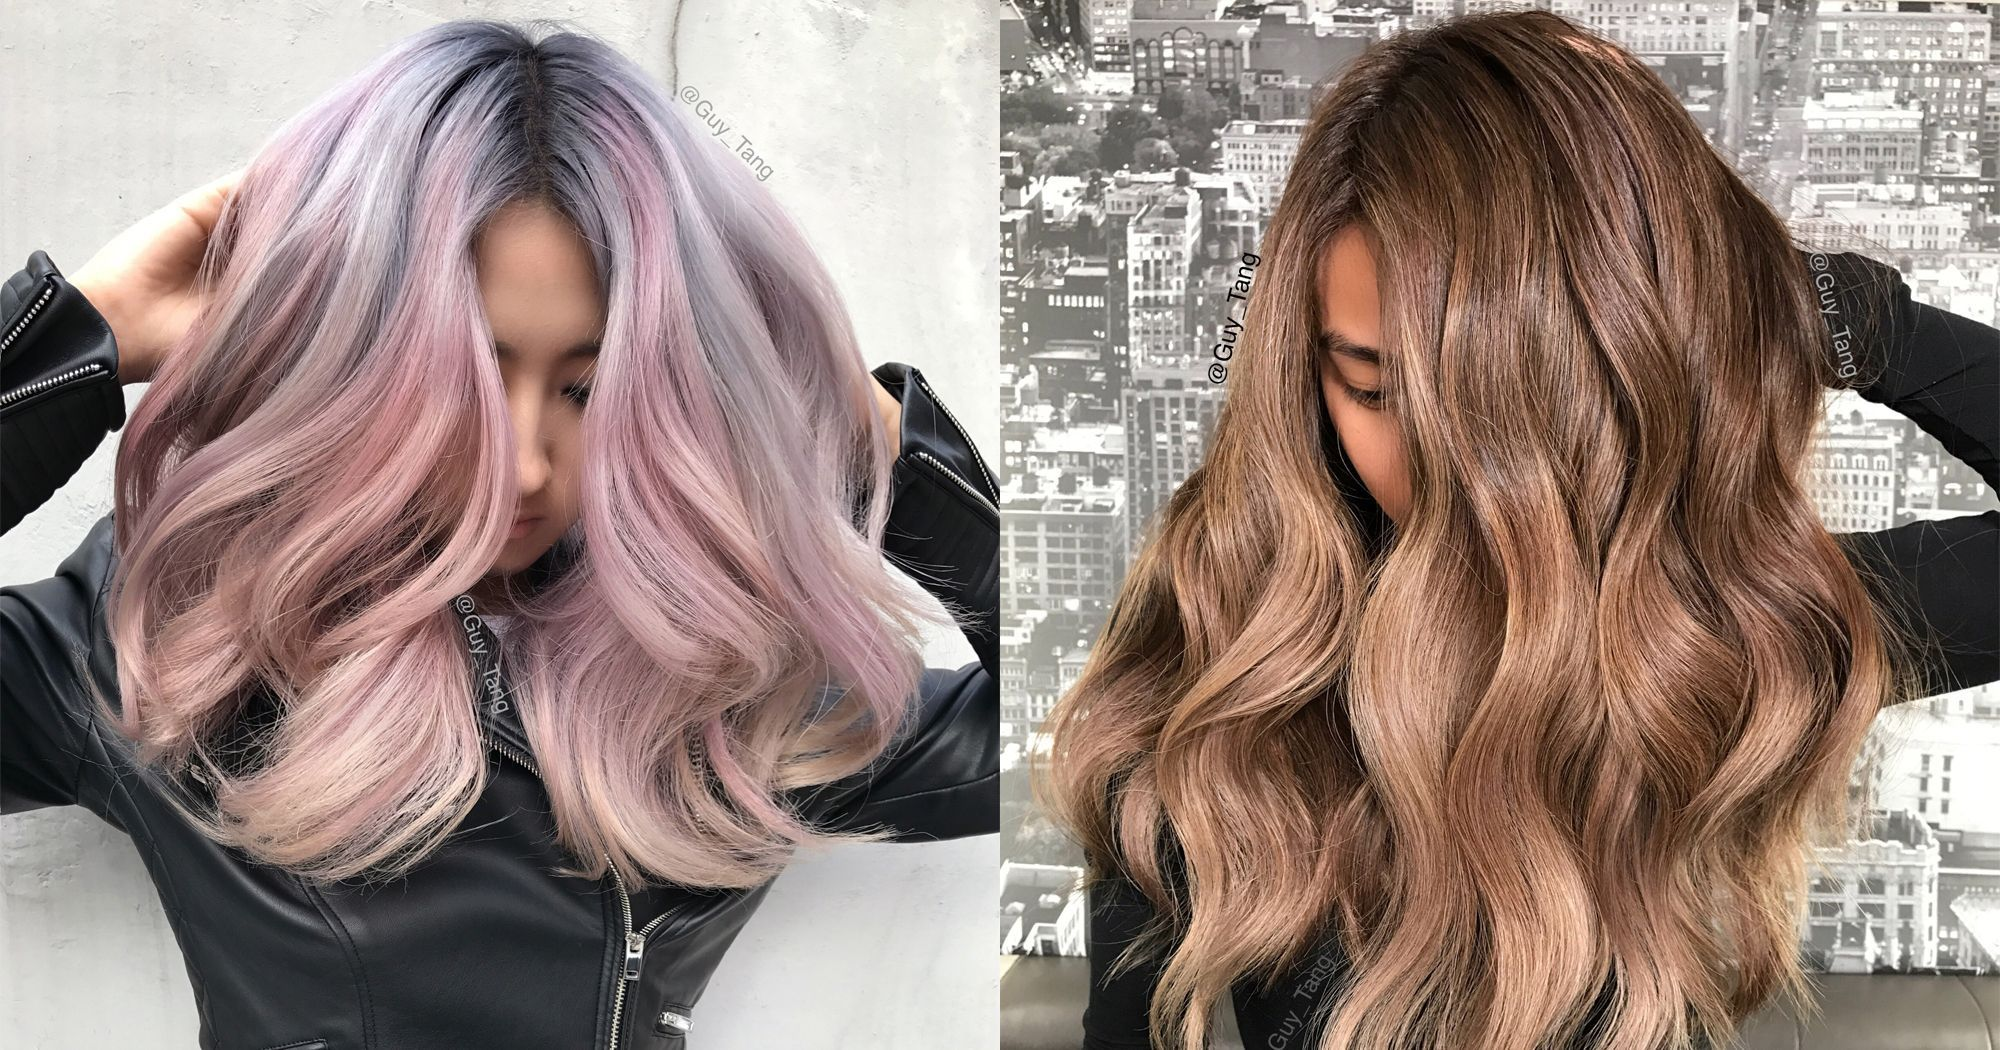 The Hair Color Trends That Are Going To Be Huge In L.A. — & Exactly How To Get Them  http://www.refinery29.com/2017/02/140447/guy-tang-mydentity-colors-2017-la-trends?utm_source=feed&utm_medium=rss